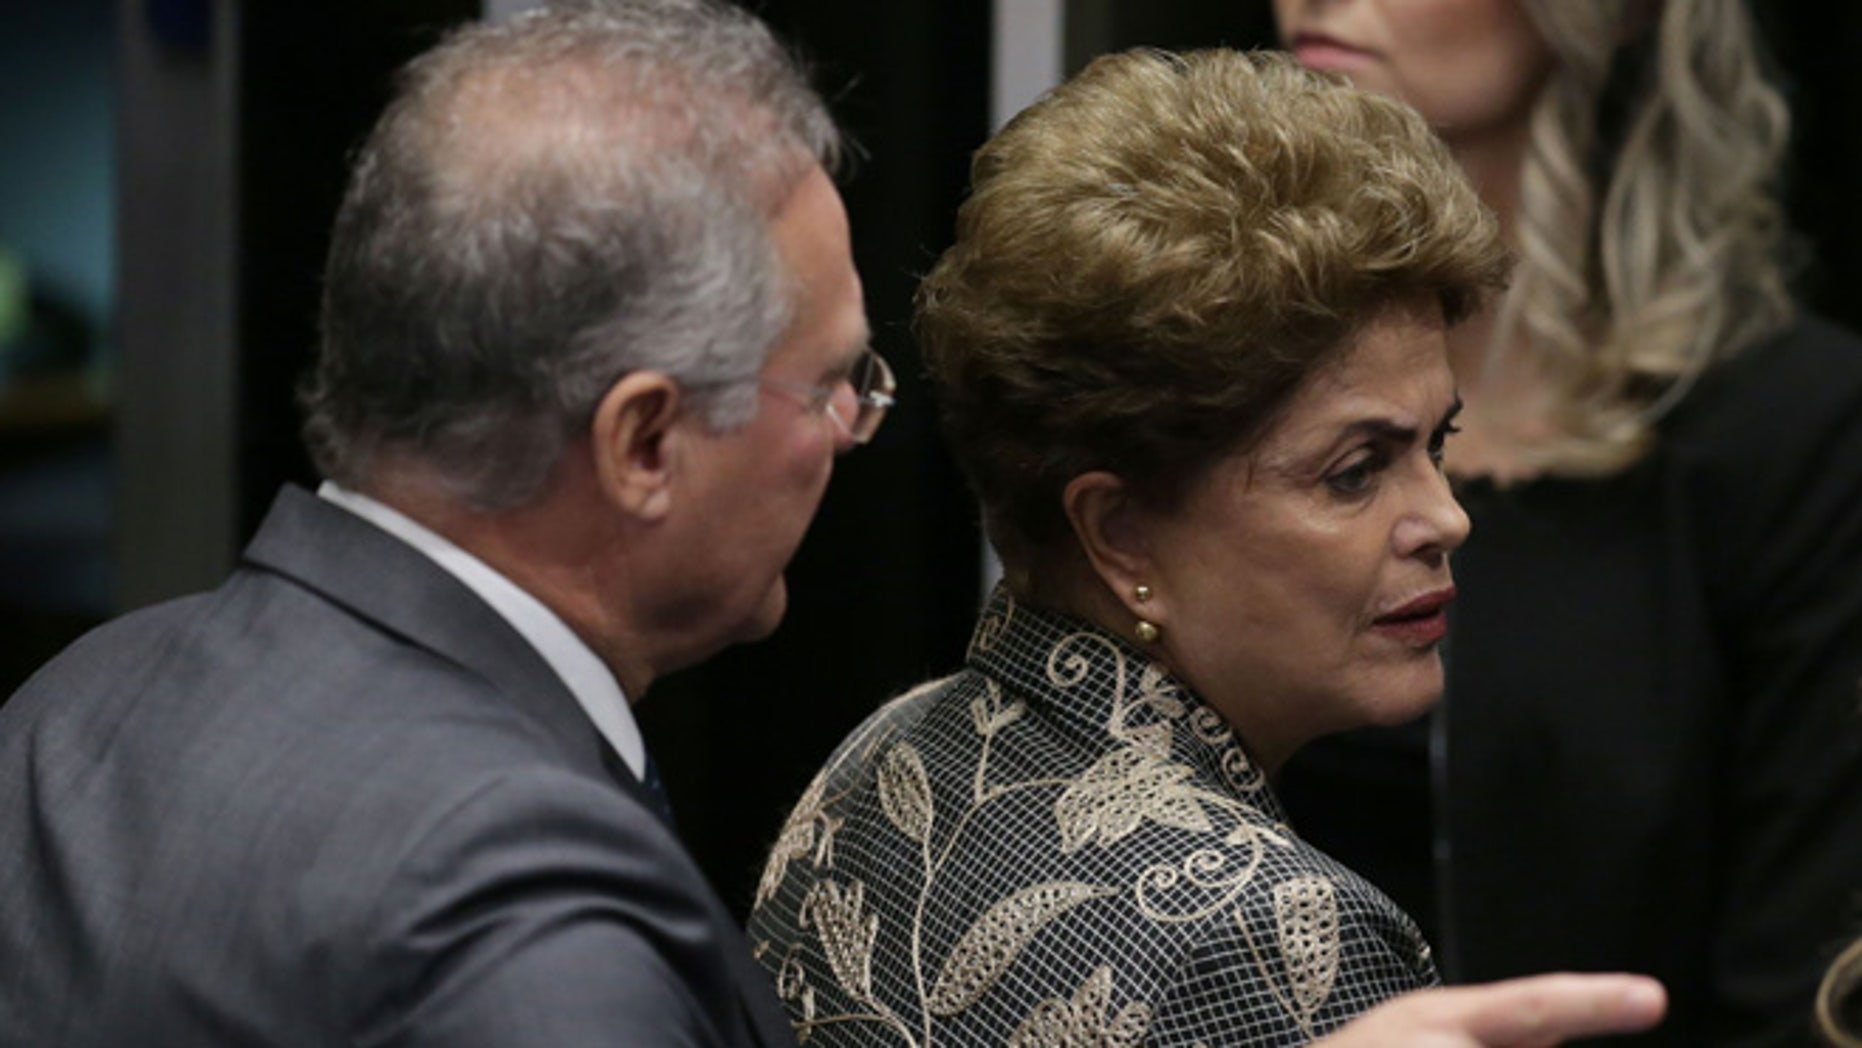 """Brazil's Senate leader Renan Calheiros points to an exit as suspended President Dilma Rousseff looks to leave Senate chambers after addressing the lawmakers, at the start of a short recess of her own impeachment trial, in Brasilia, Brazil, Monday, Aug. 29, 2016. Fighting to save her job, Rousseff told senators on Monday that the allegations against her have no merit. """"I know I will be judged, but my conscience is clear. I did not commit a crime,"""" she told senators. Rousseff's address comes on the fourth day of the trial. (AP Photo/Eraldo Peres)"""